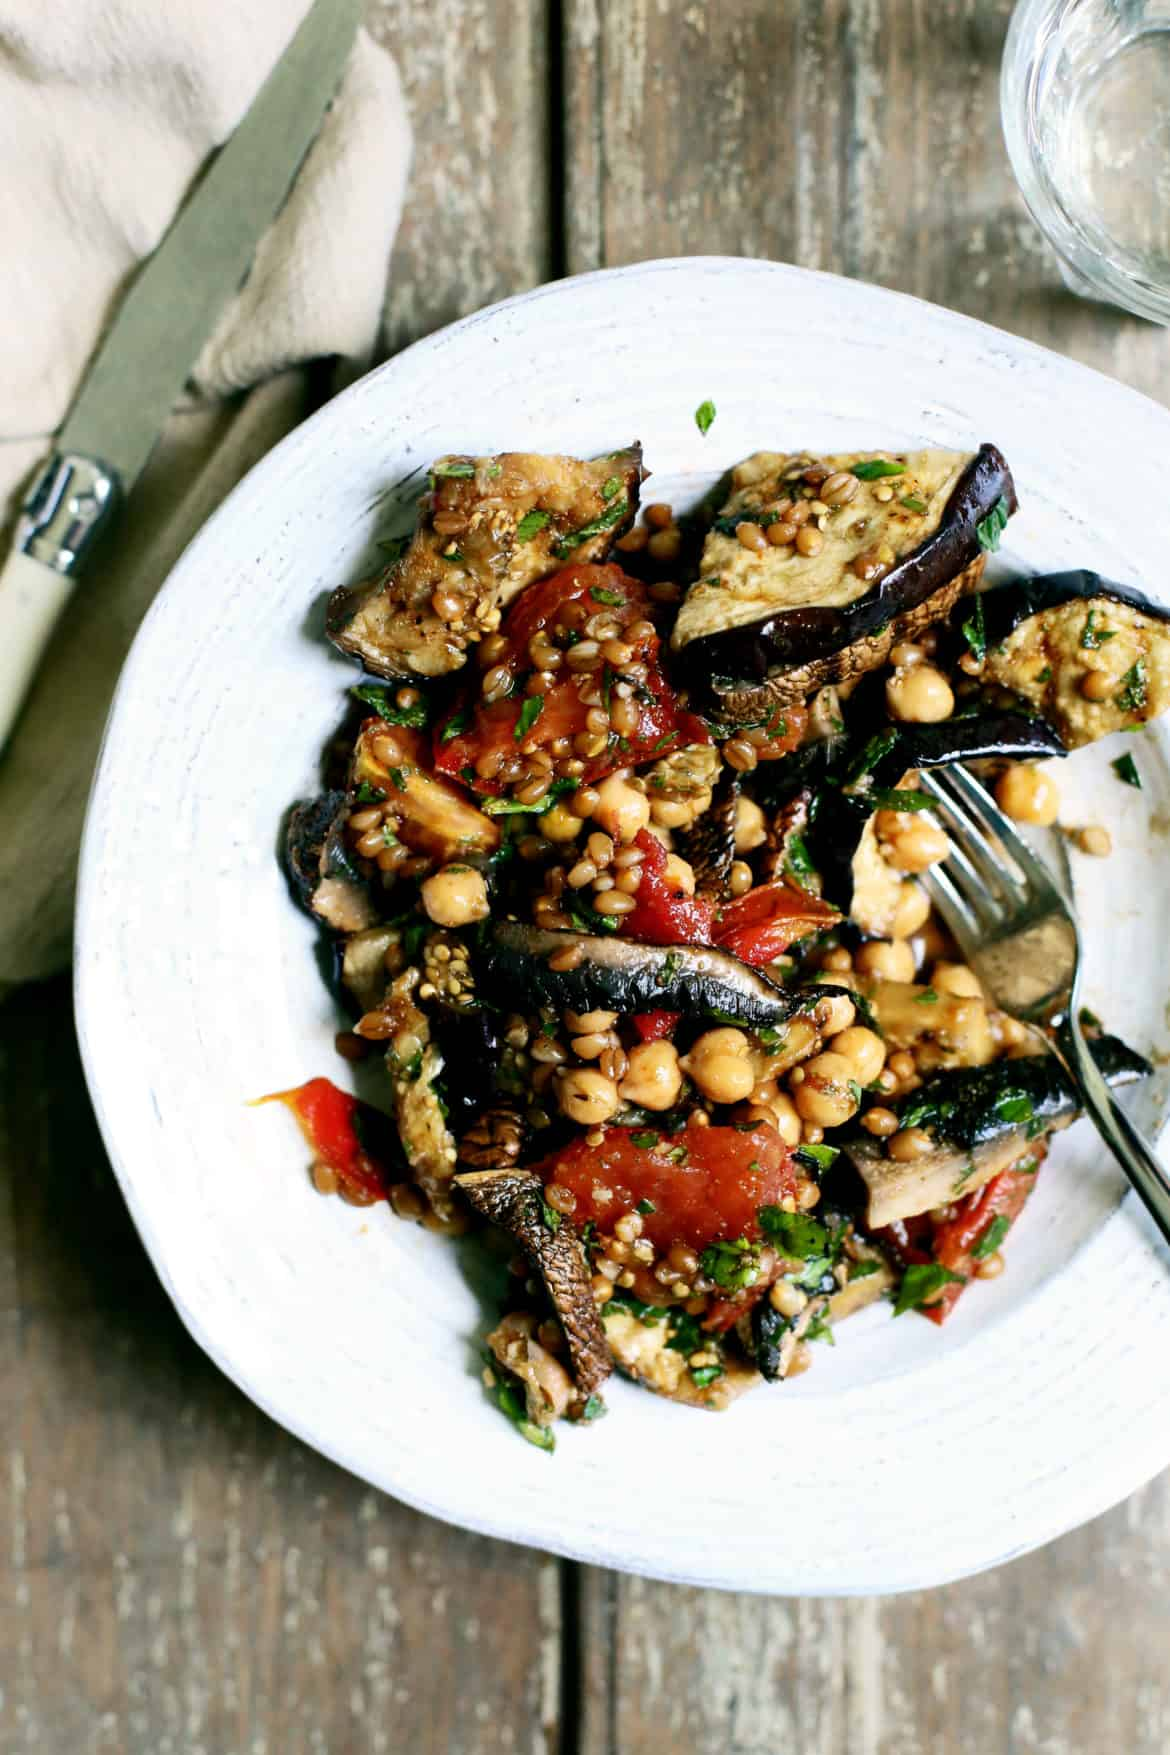 Grilled Vegetable, Wheat Berry & Chickpea Salad with Smoky Cumin Dressing